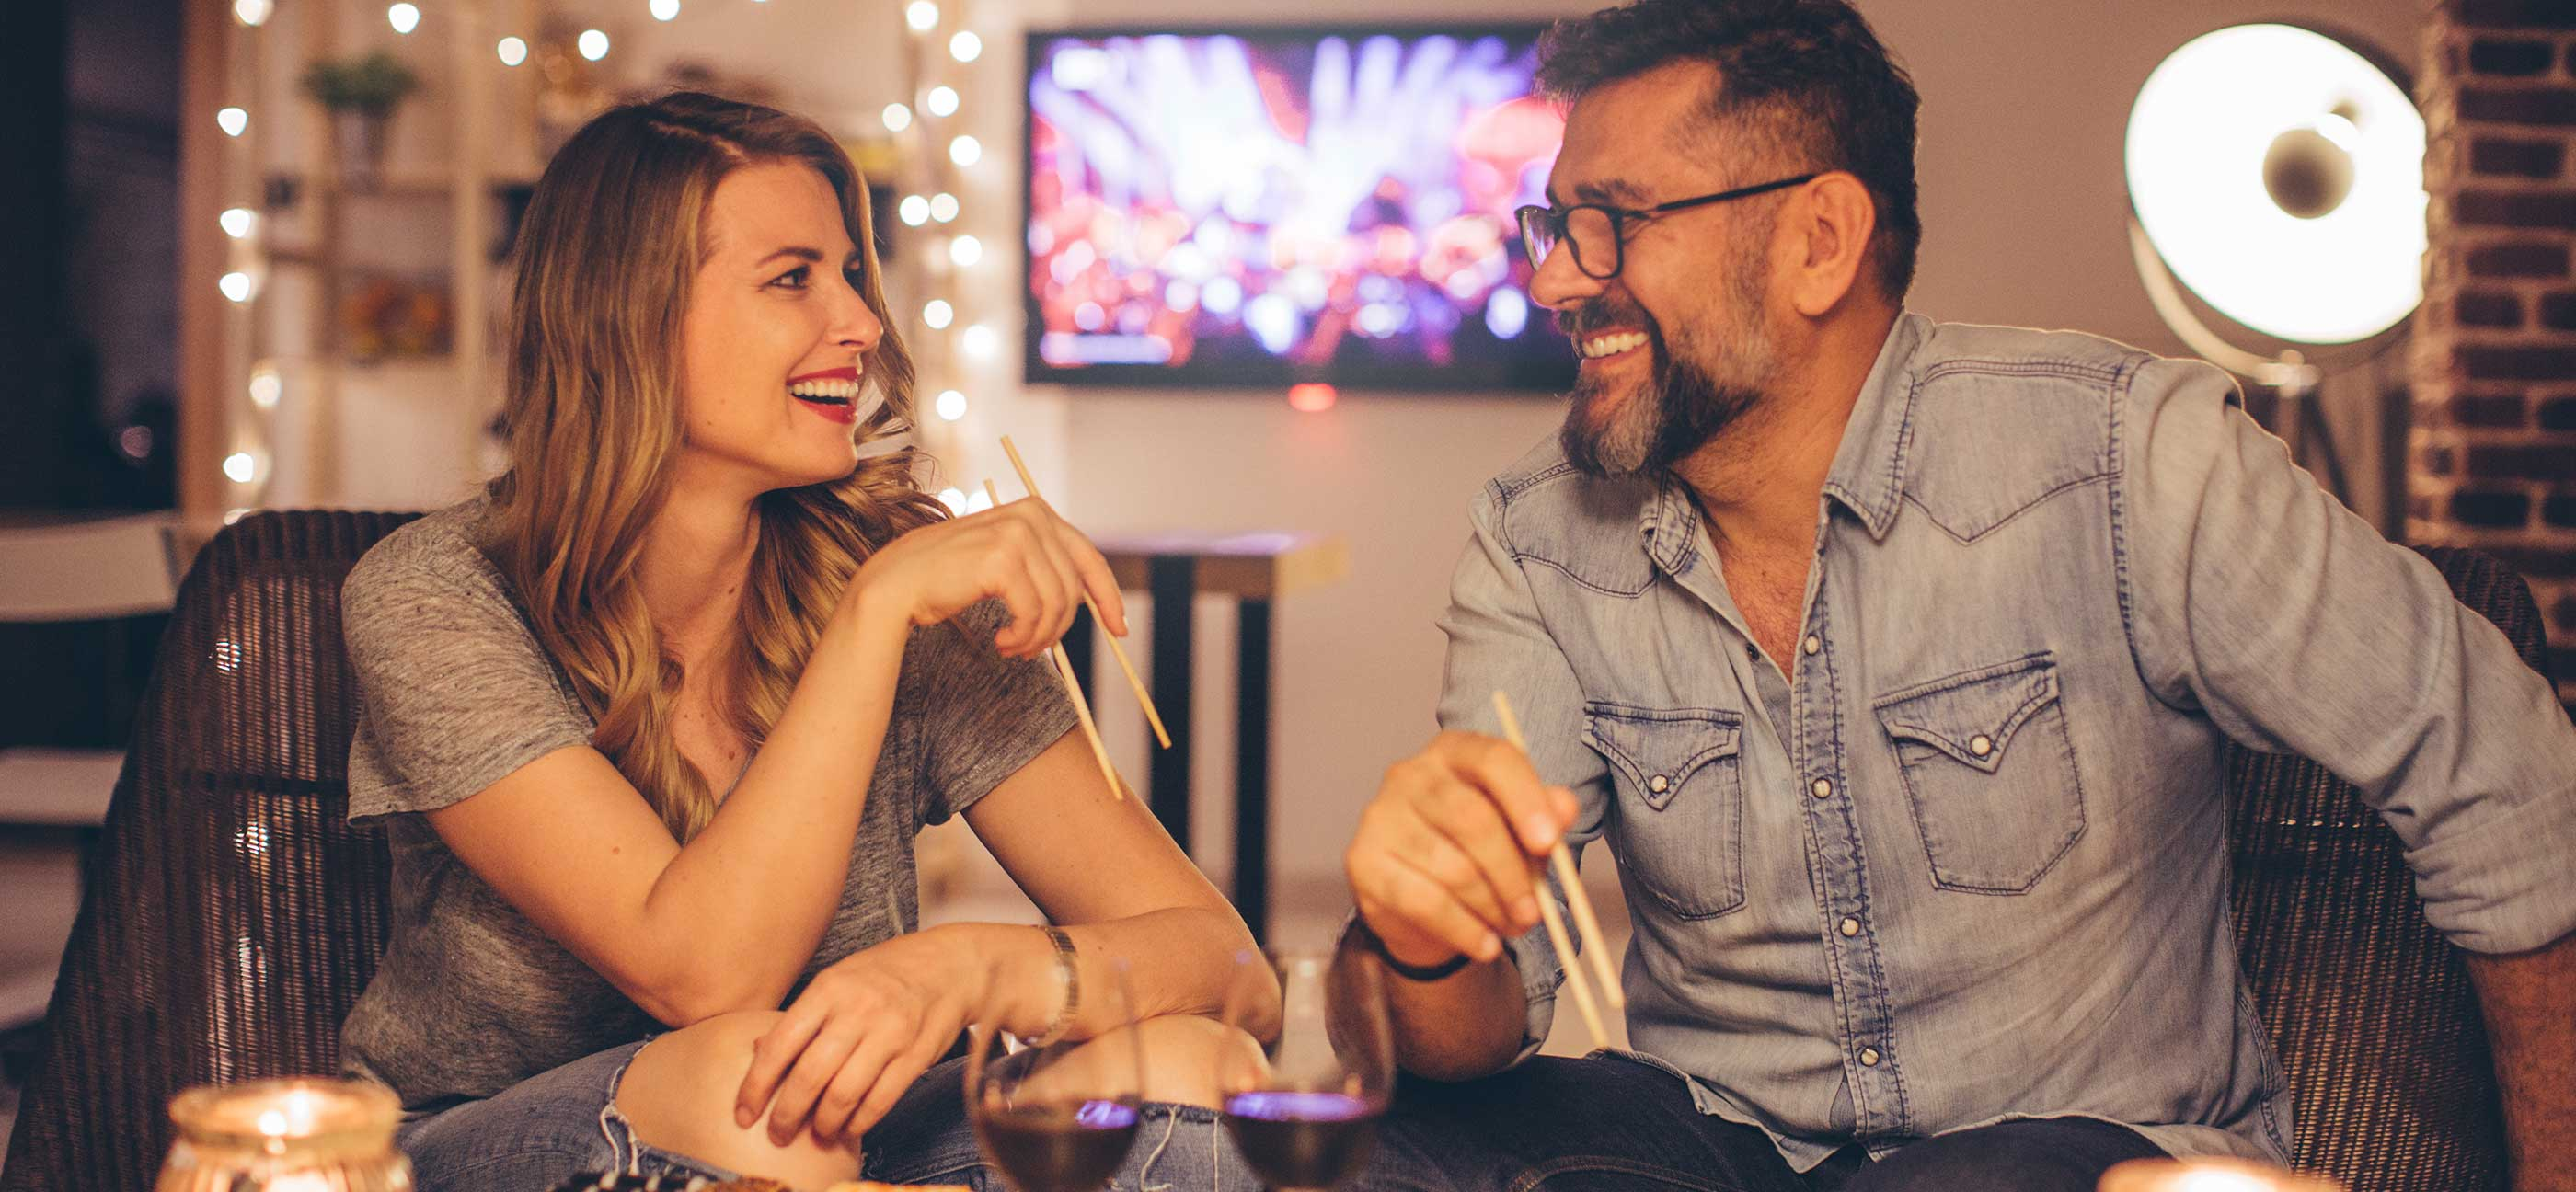 Rituals Strengthen Couples. Here's Why They're Good for Business, Too